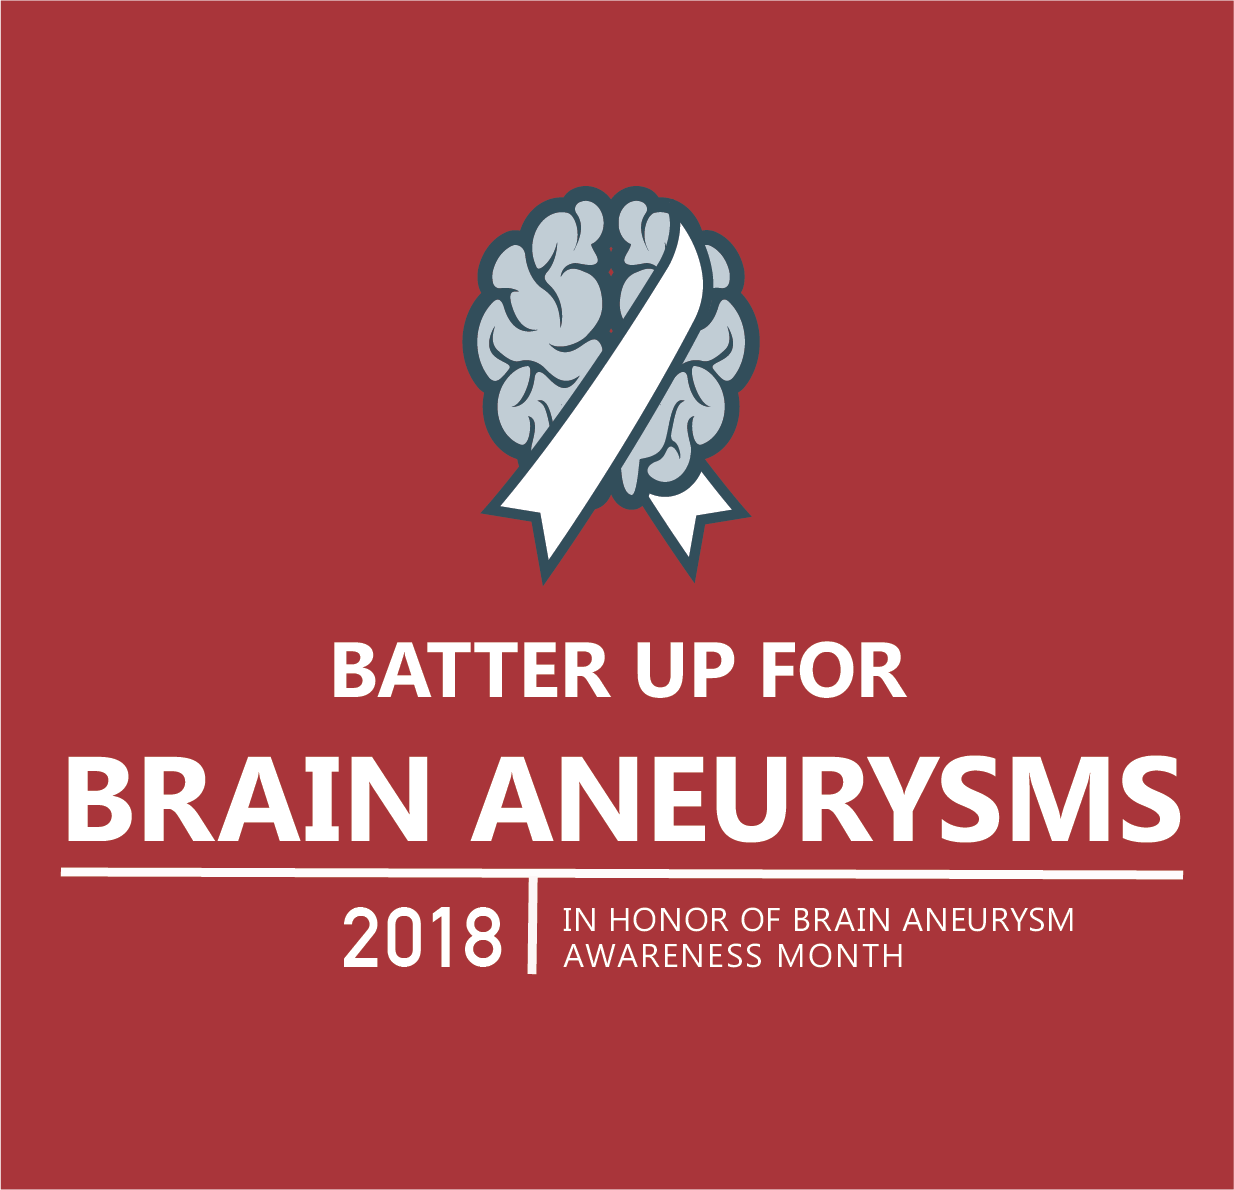 https://www.joeniekrofoundation.com/batter-up-for-brain-aneurysms/attachment/artboard-83x/